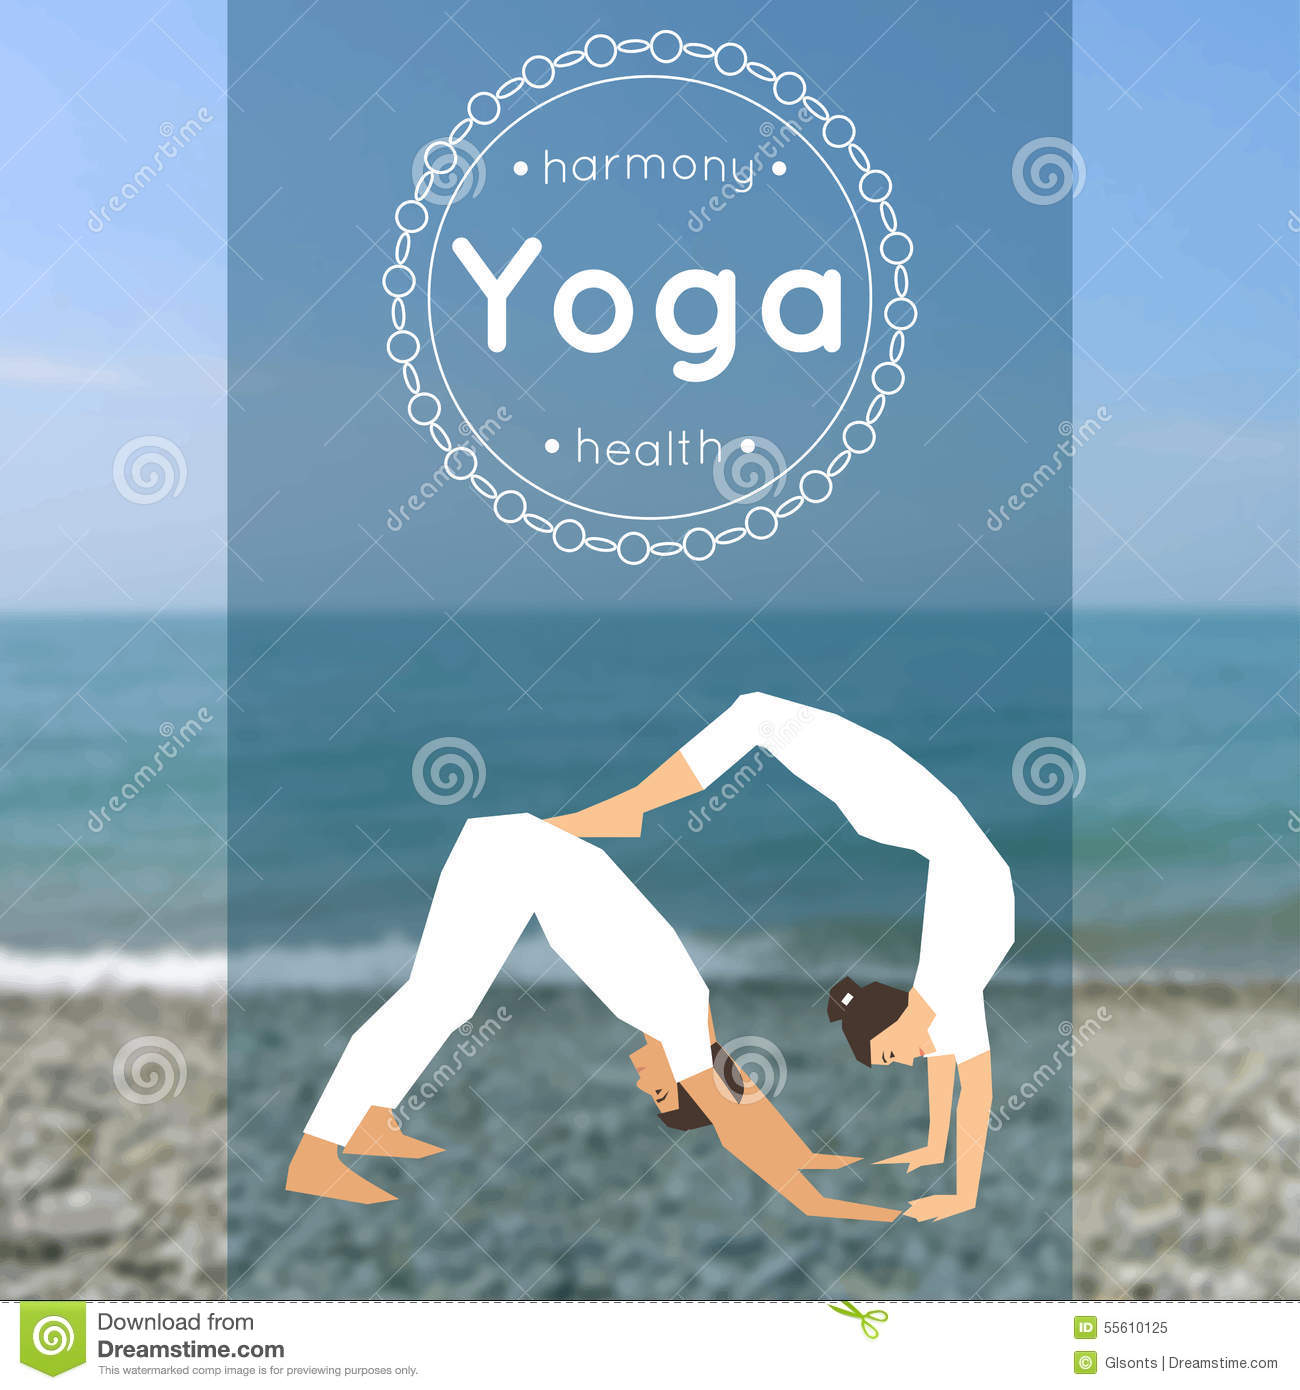 Yoga Poster With Couple Of Man And Woman In The Pose Stock